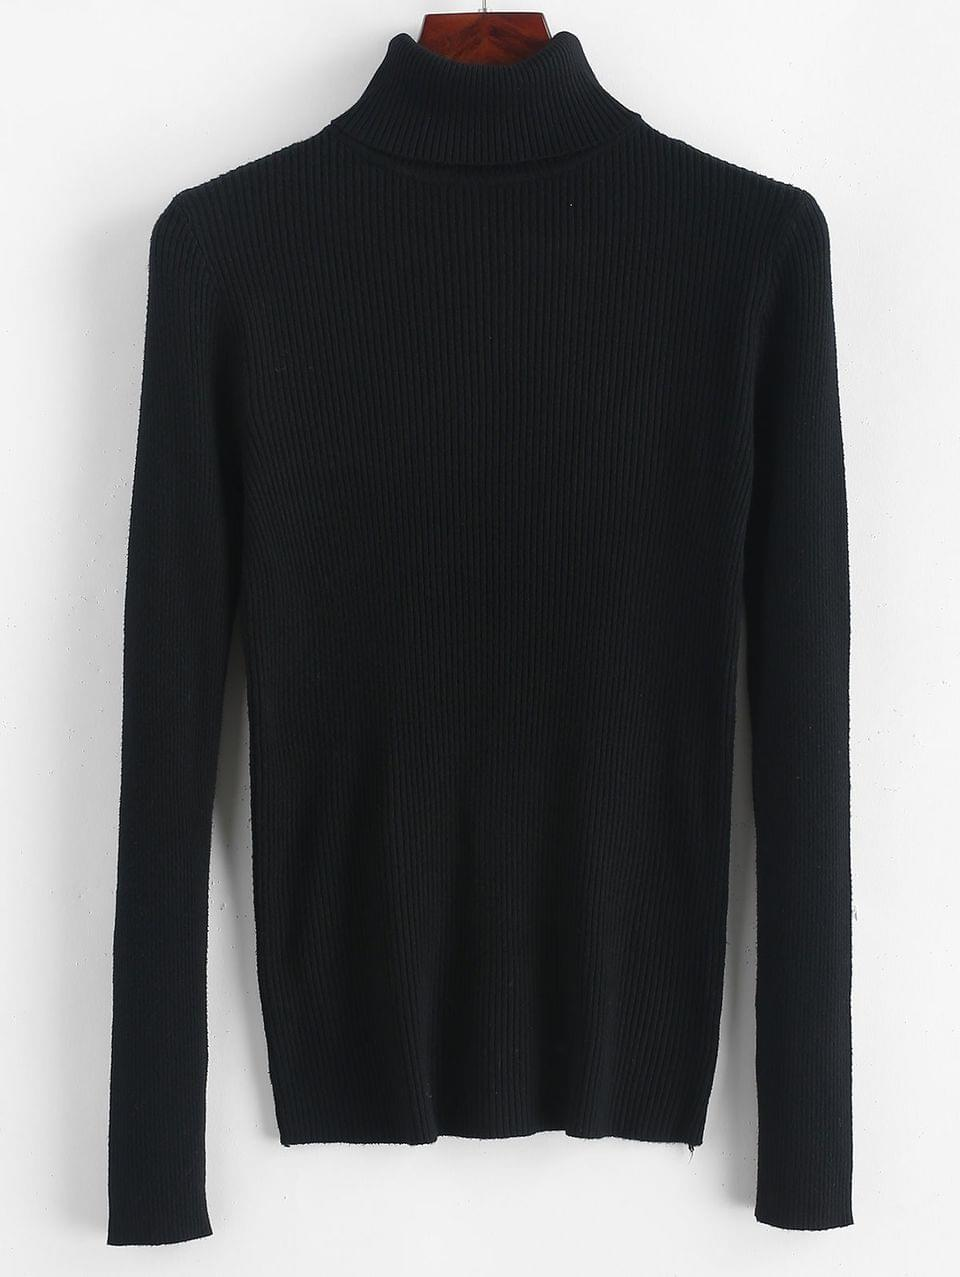 Women's Turtleneck Ribbed Slim Knit Plain Sweater - Black